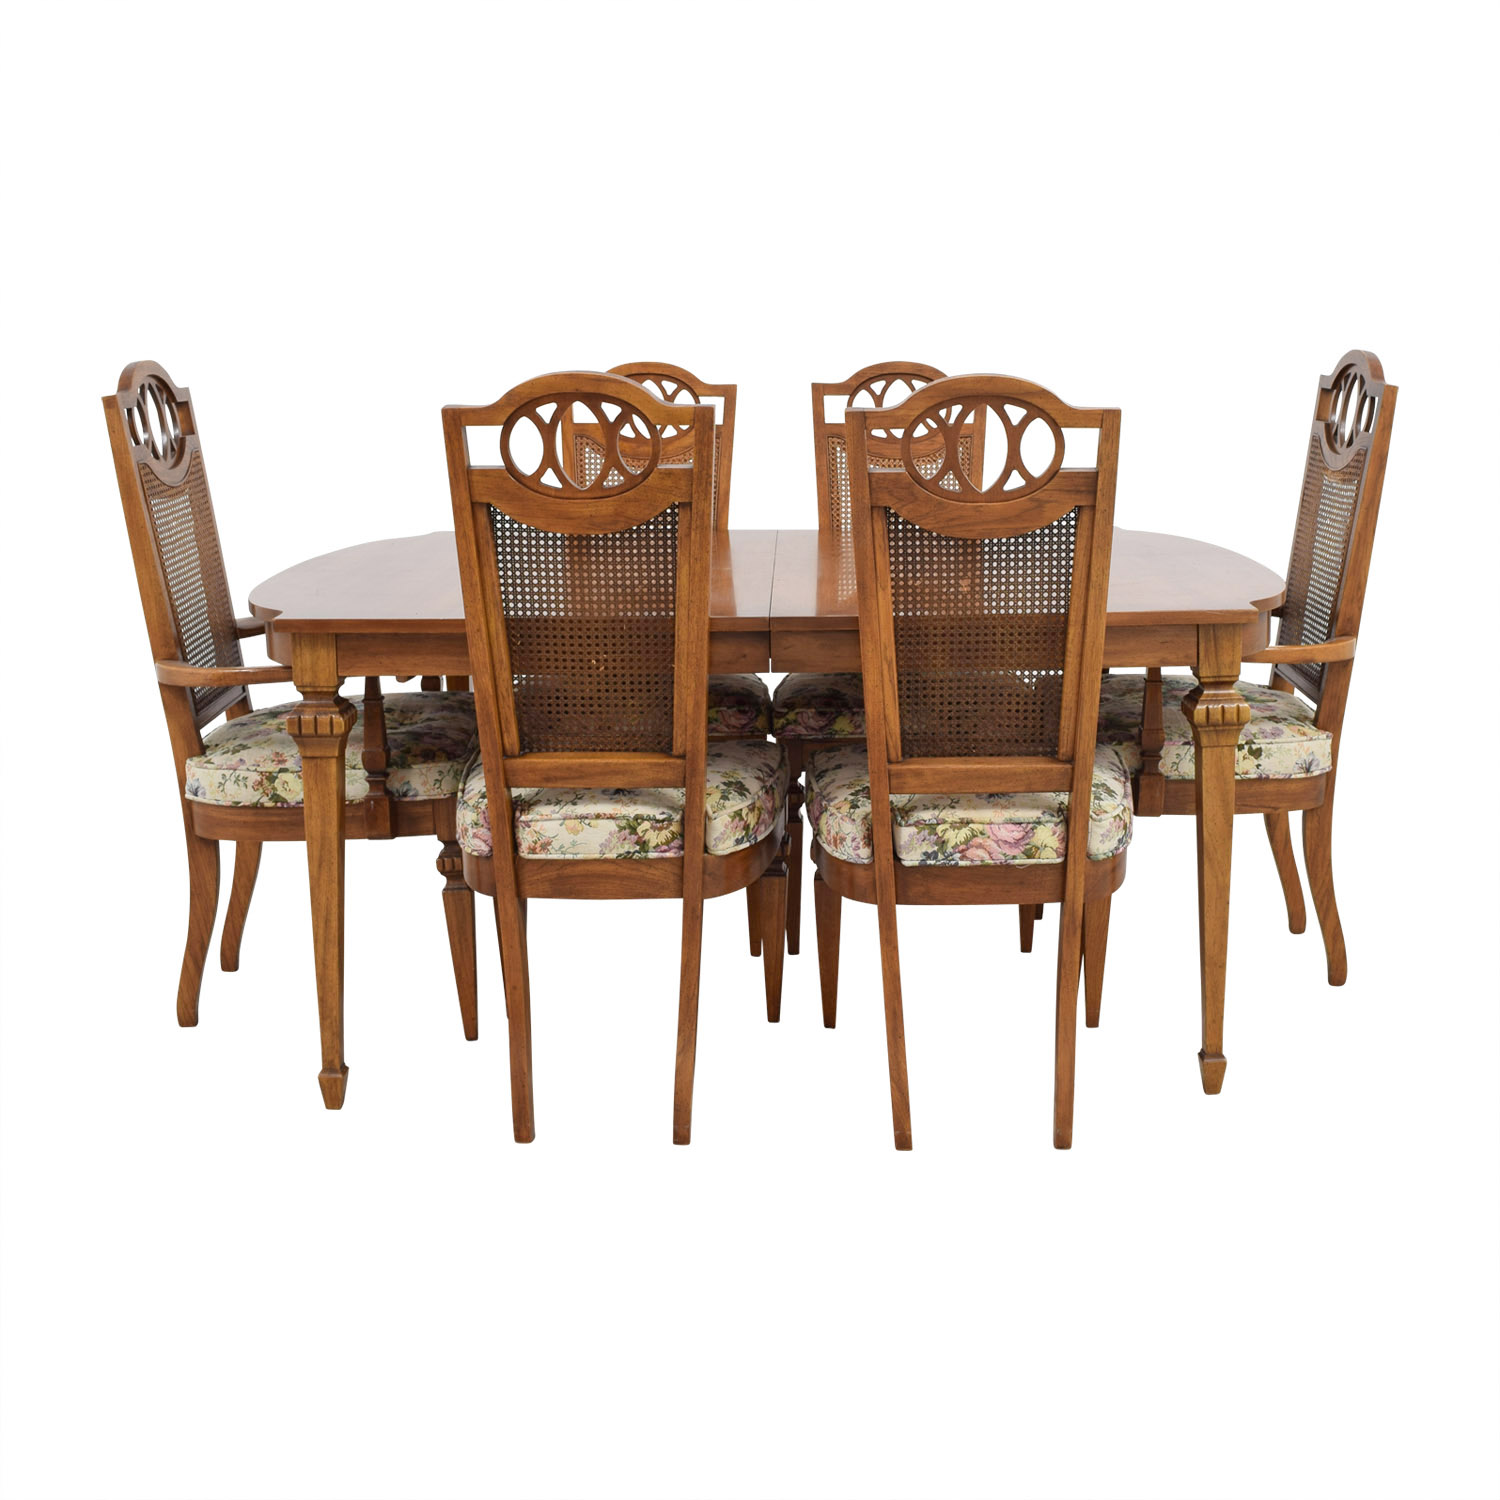 Italian Dining Set with Leaf Extensions and Floral Upholstered Chairs discount